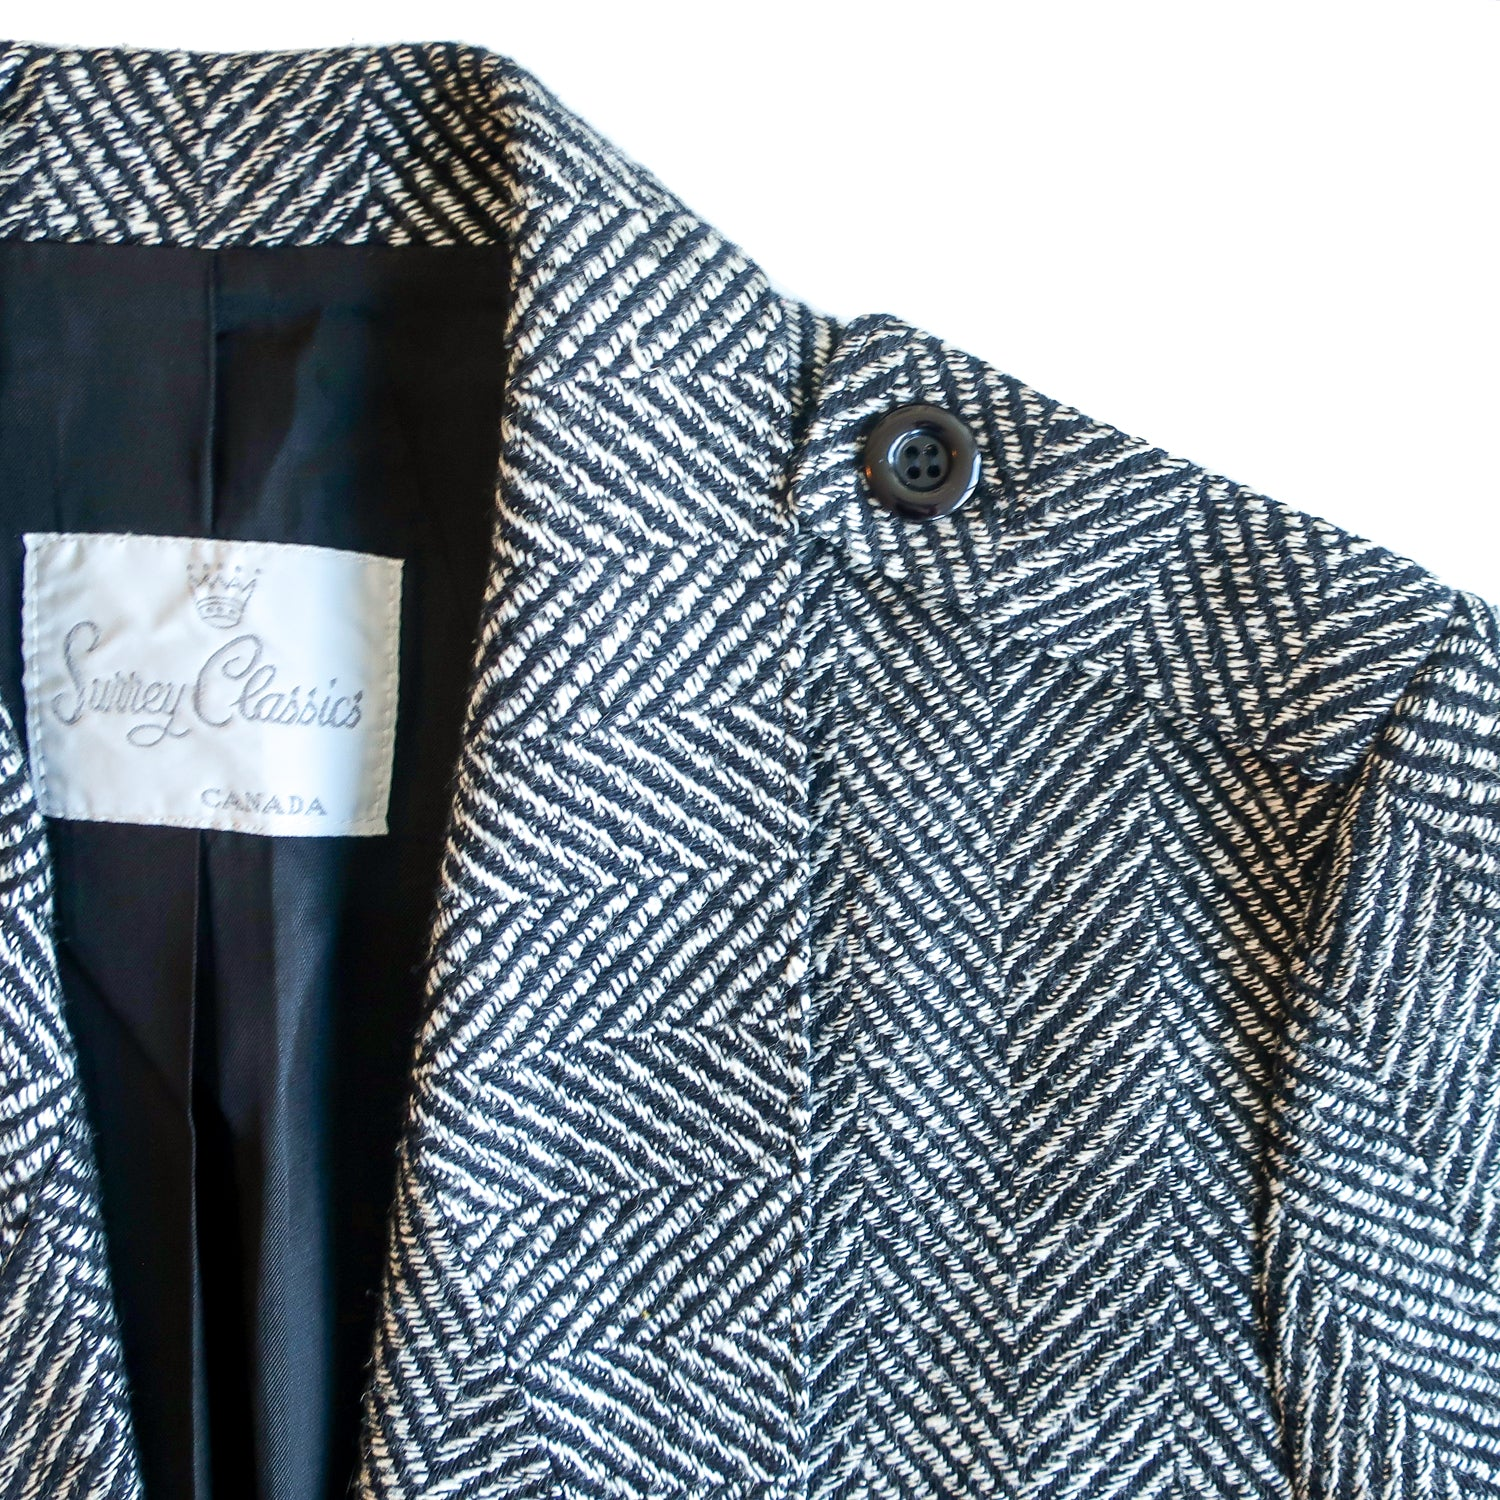 Second Room Vintage Clothing. Vintage black, grey and white chevron print open blazer, with 3/4 bracelet sleeve. Fully lined in black, with two front pockets, and epaulets on the shoulders with black buttons. No shoulder pads, Made in Canada. Free North American shipping on all orders.